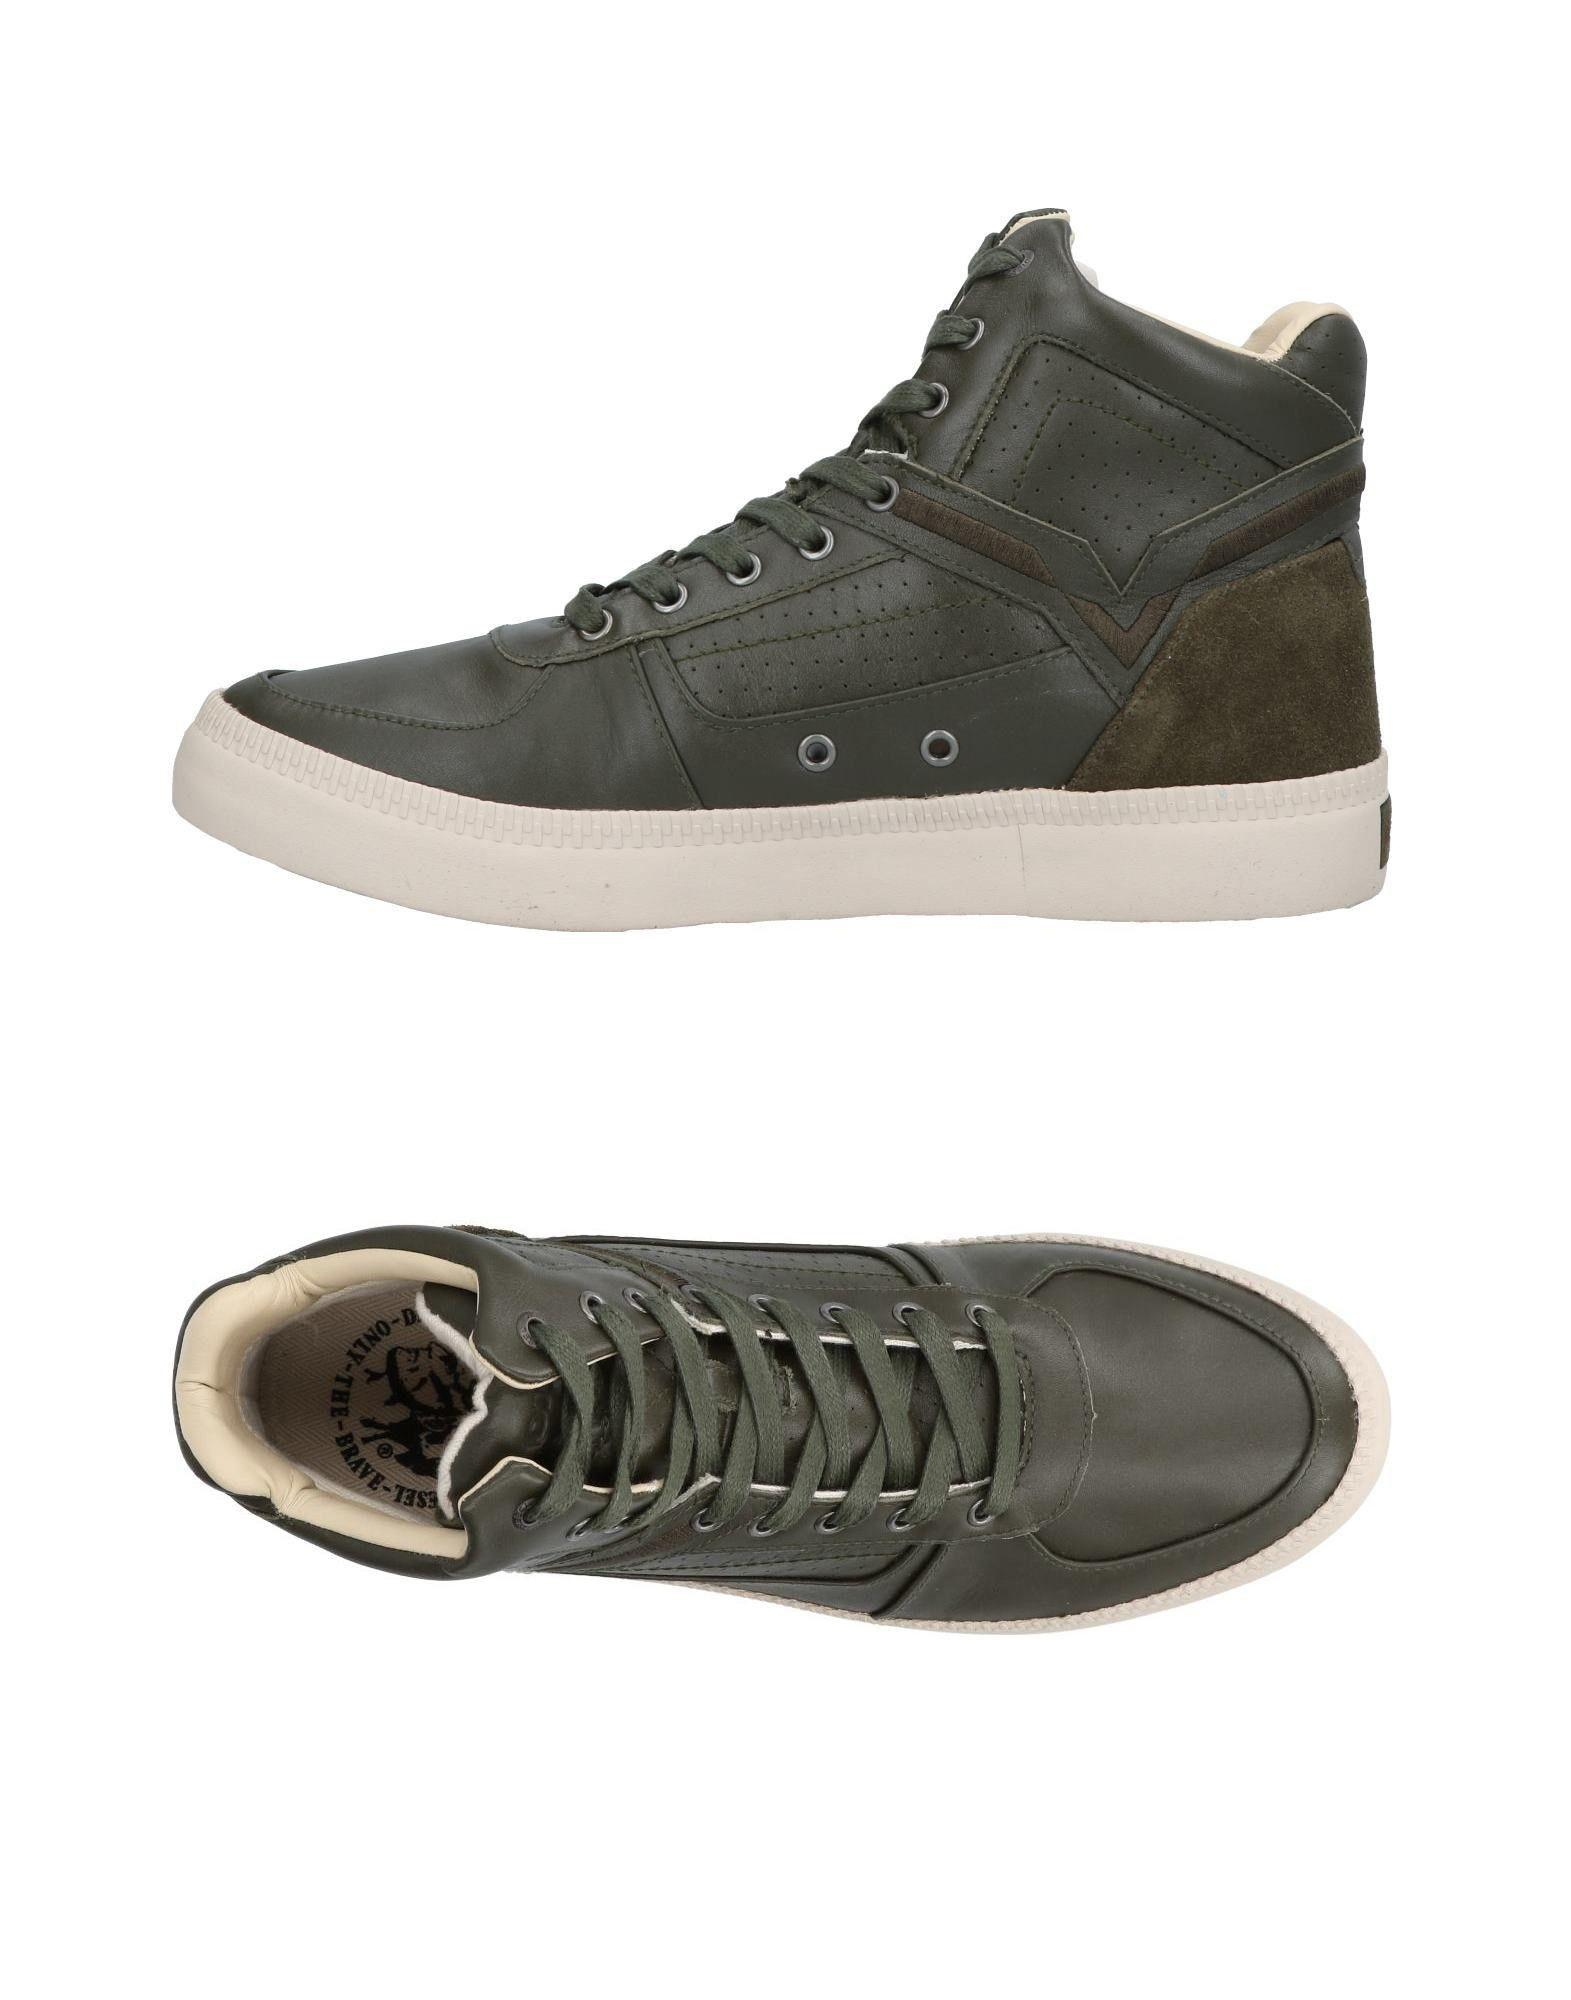 Diesel Green Military High-Top Sneakers BW0go